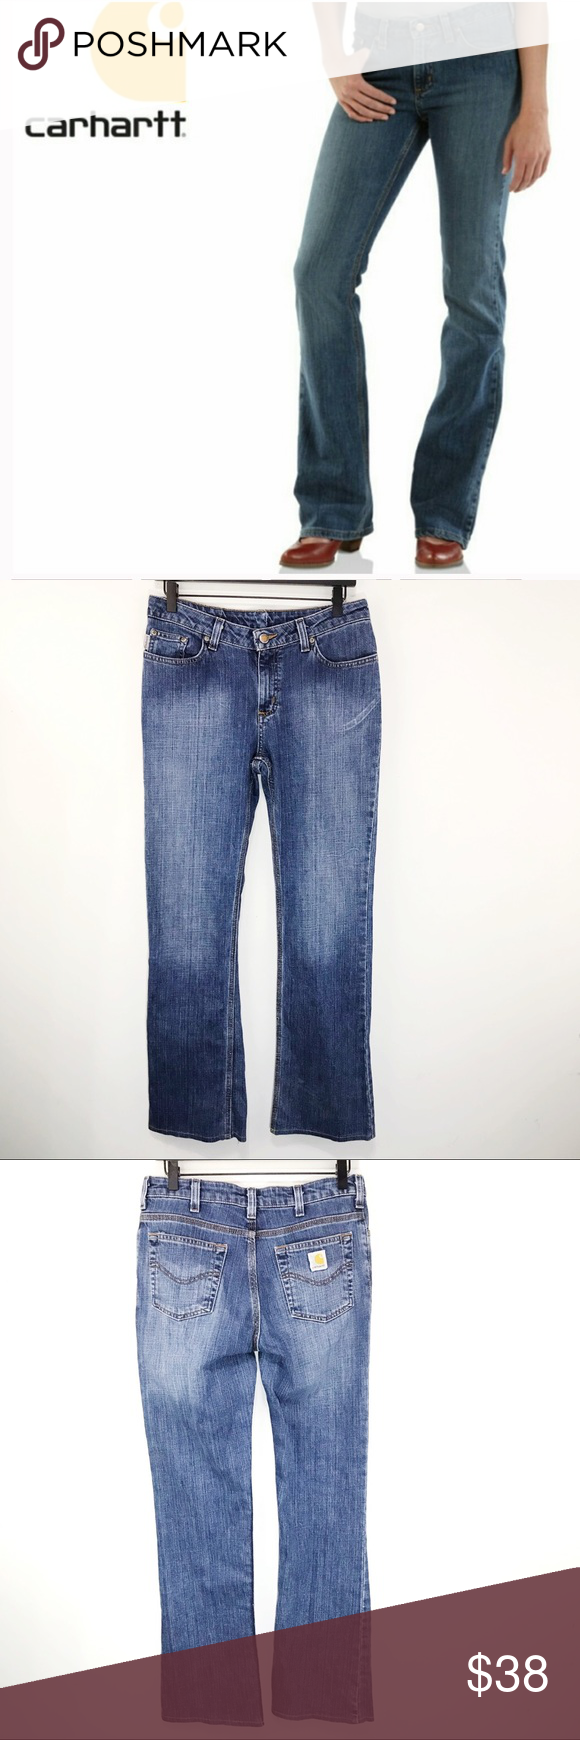 "Carhartt Womens Traditional Fit Jeans Bootcut Sz 6 Carhartt Womens Work Jean Traditional Fit Bootcut Blue Stretch Size 6x32. Condition is Pre-owned. Shipped with USPS Priority Mail.  Excellent Condition  Waist across 16"" Rise 10"" Inseam 32"" Carhartt Jeans Boot Cut #carharttwomen"